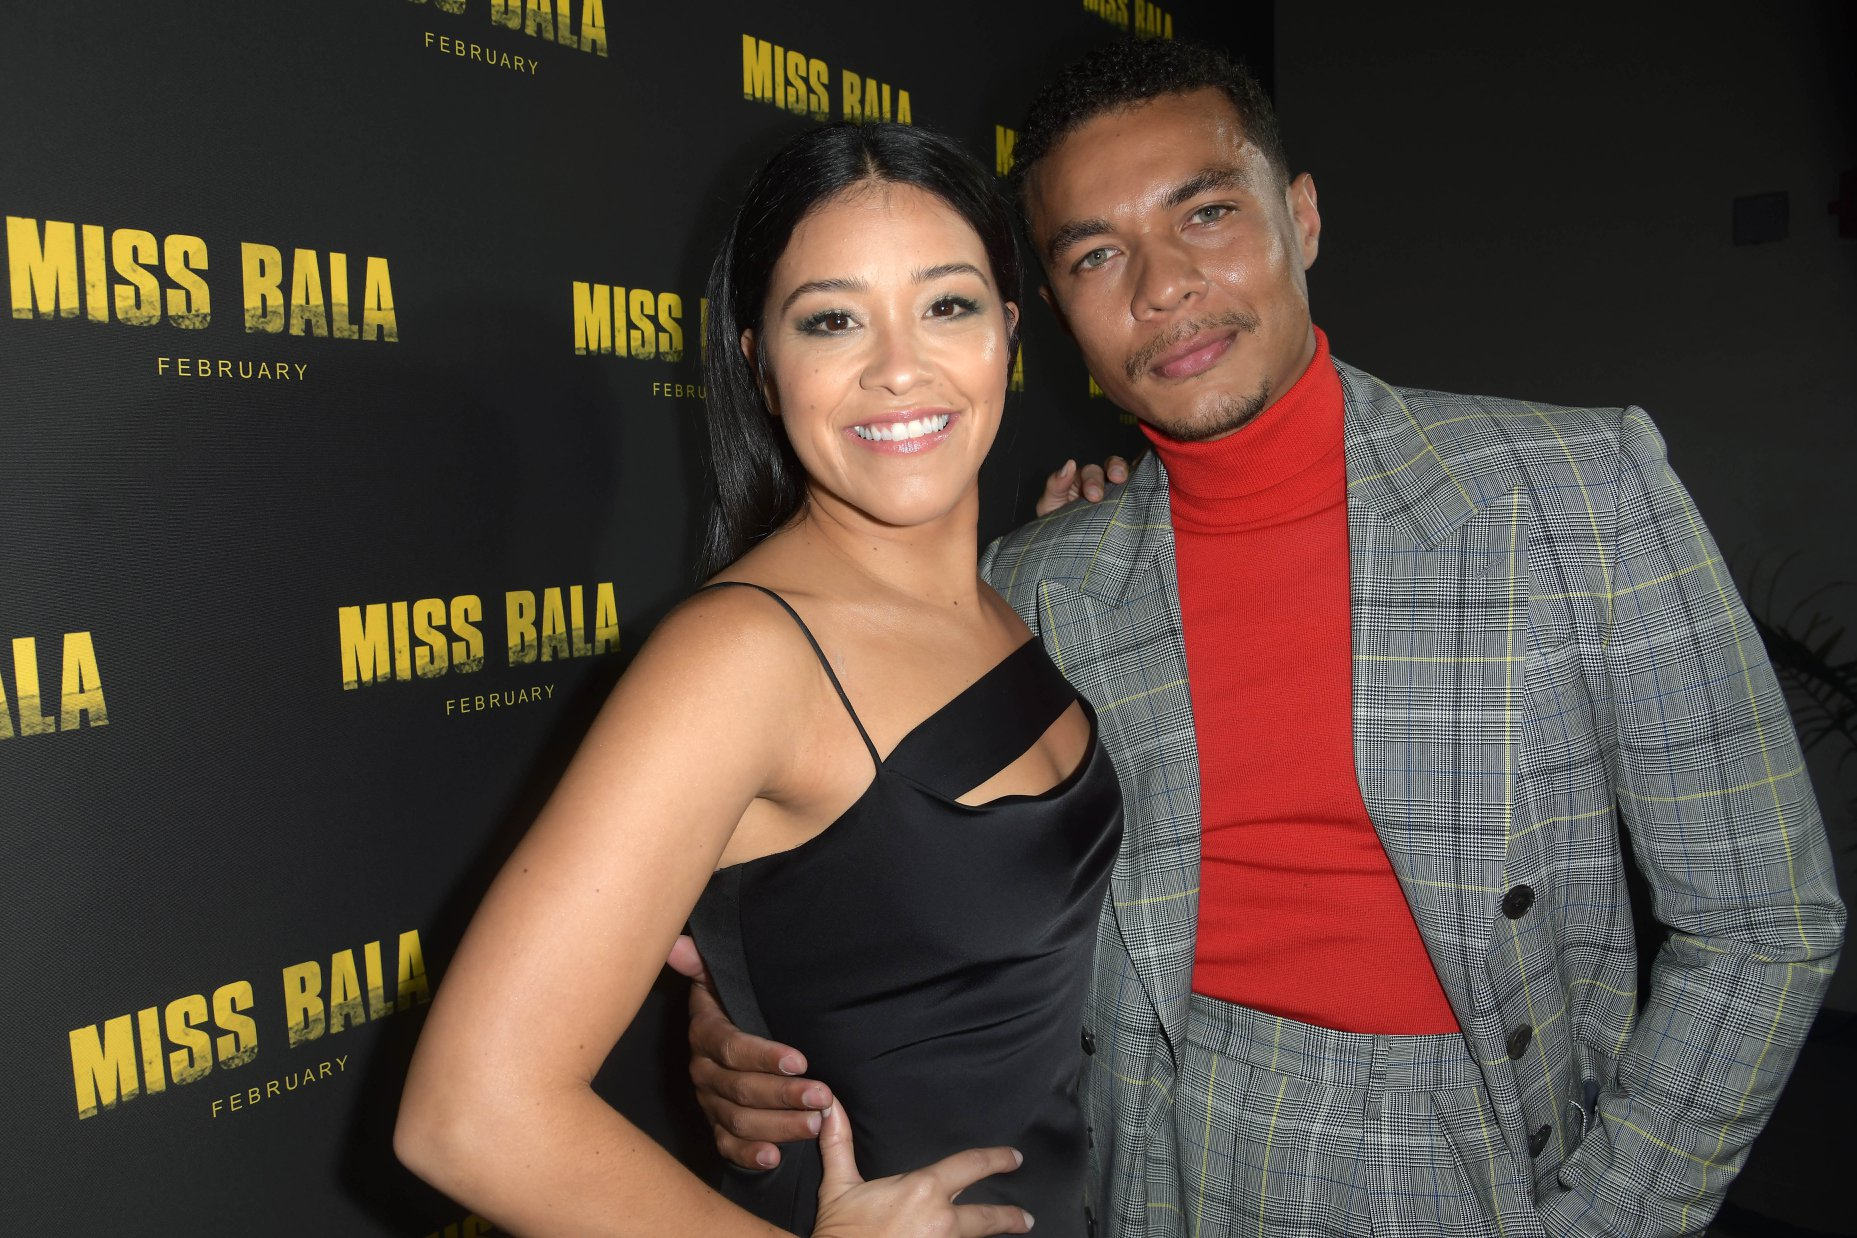 Photos courtesy   Miss Bala  /Colombia Pictures